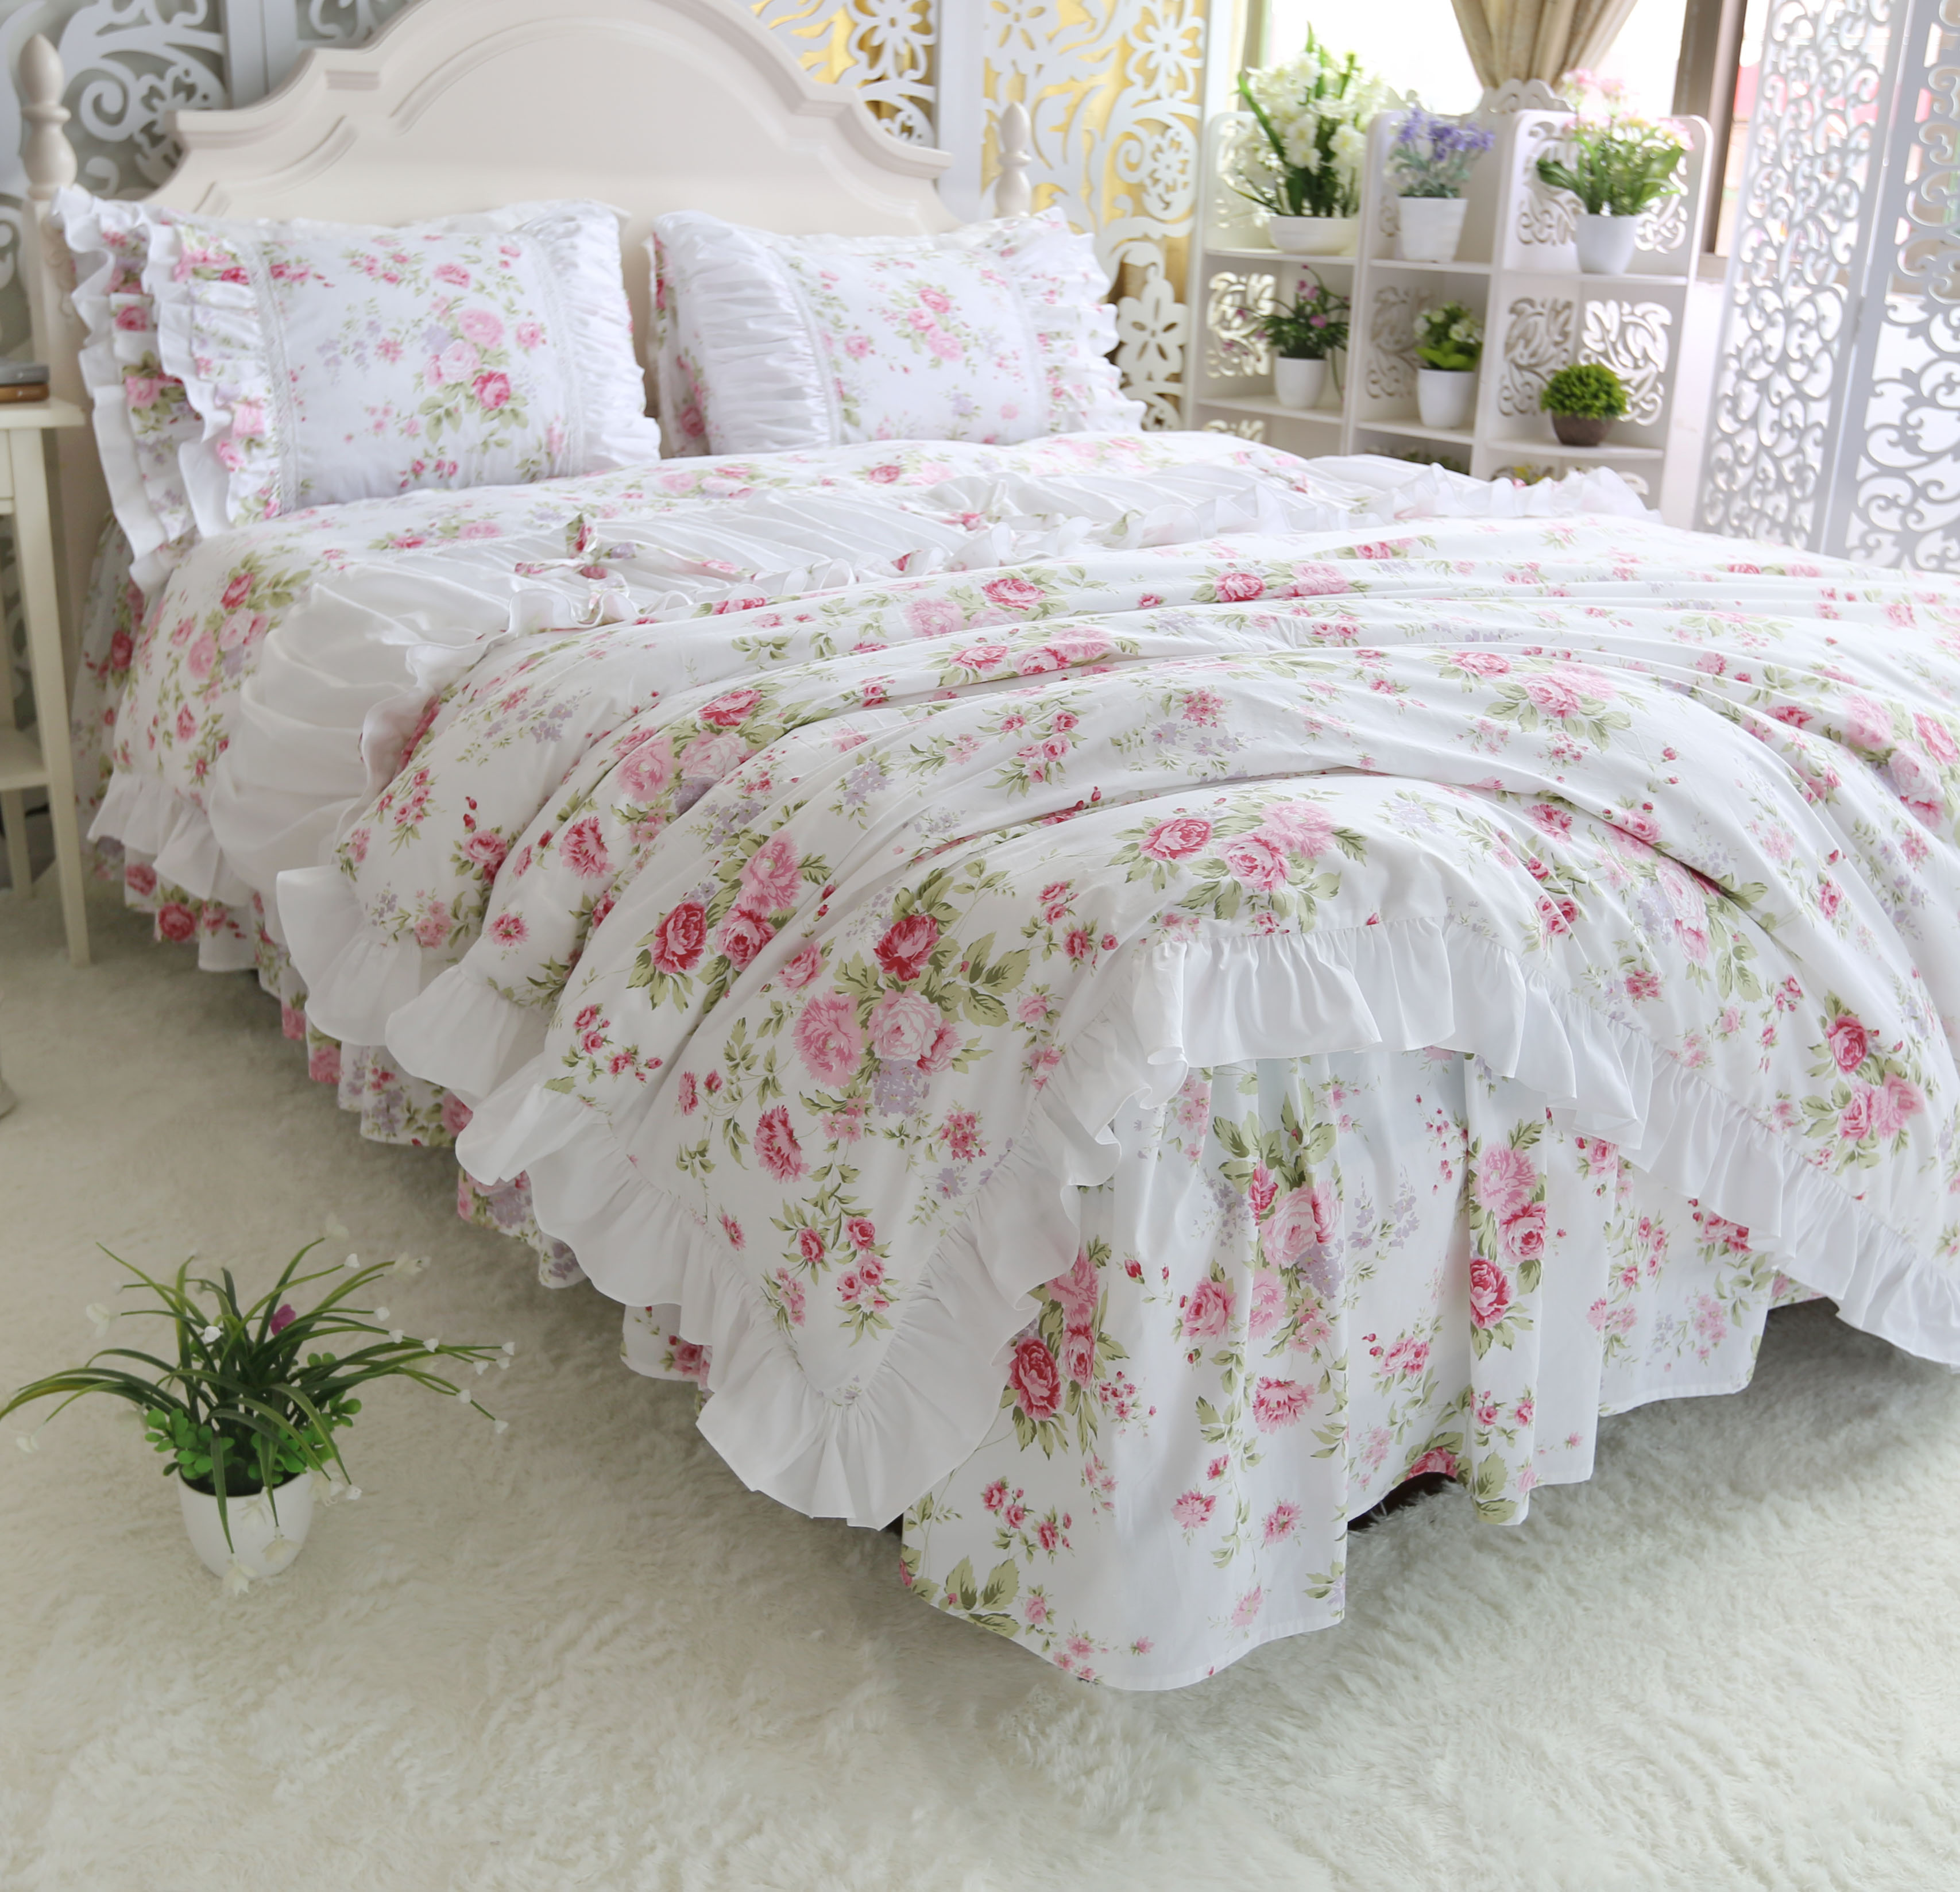 Cotton bedding set twill princess wind ruffled quilt cover pillowcase plant flower print bed spreadCotton bedding set twill princess wind ruffled quilt cover pillowcase plant flower print bed spread